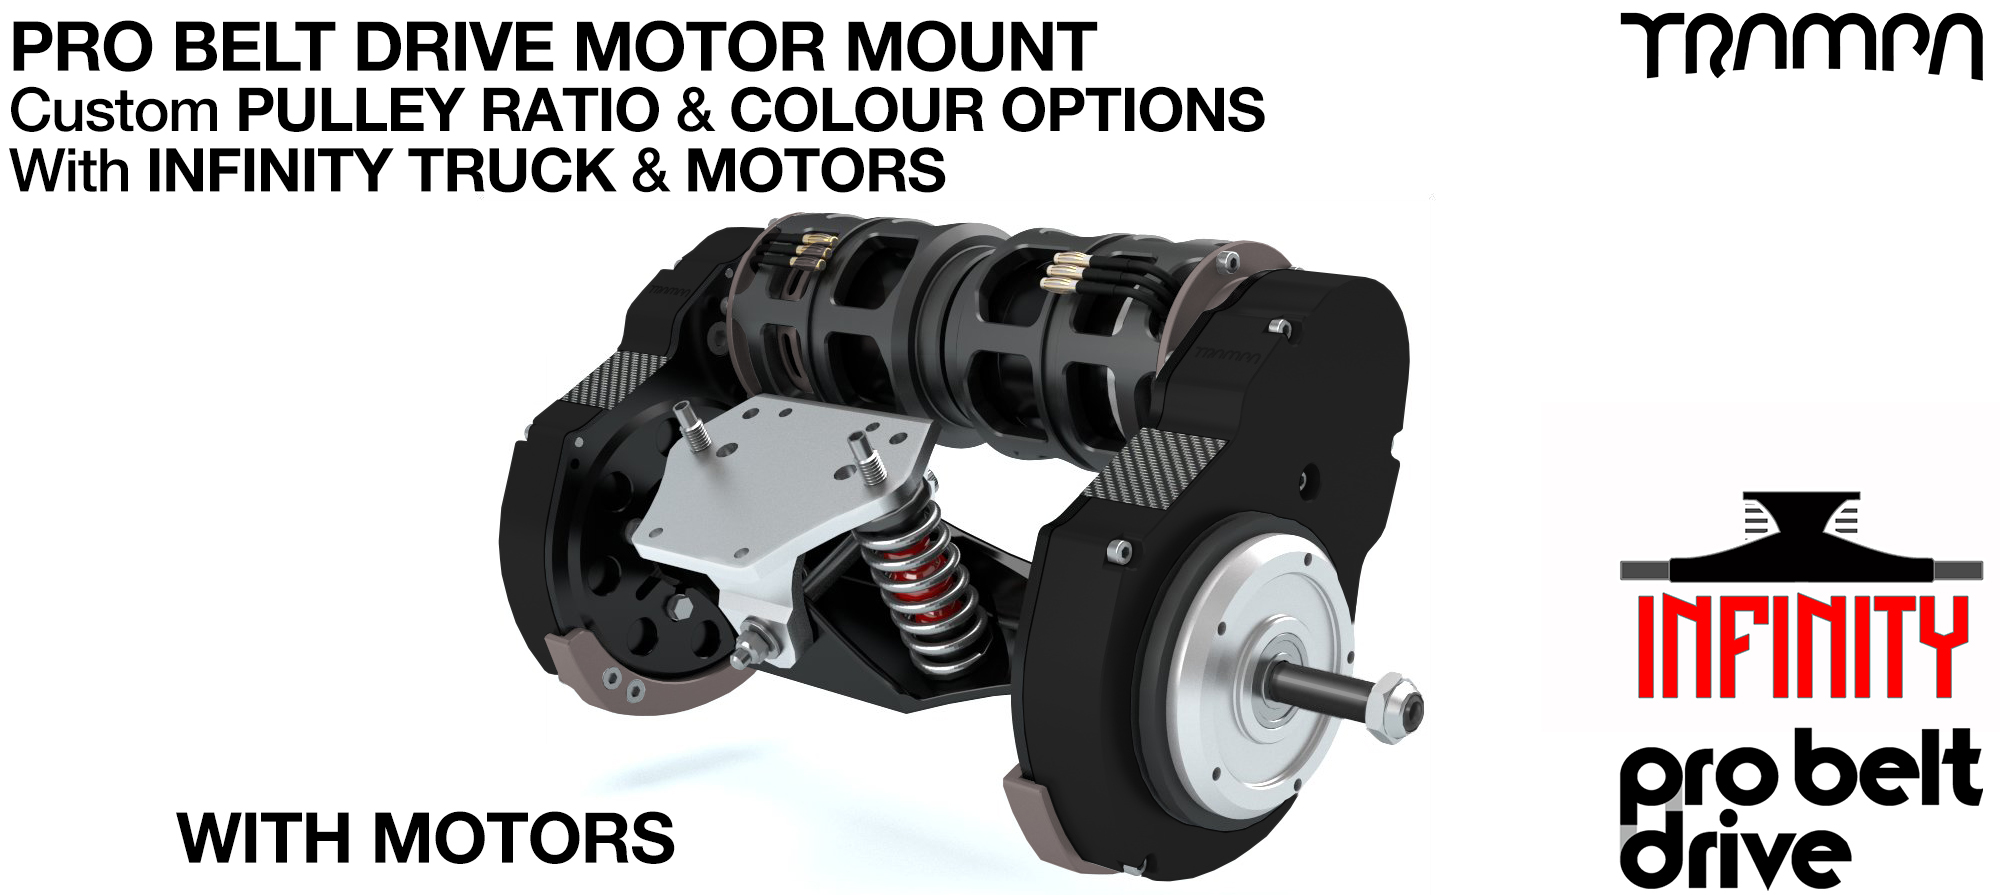 Mountainboard TPRO Belt Drive Motor Mounts, Motors & Precision INFINITY Truck